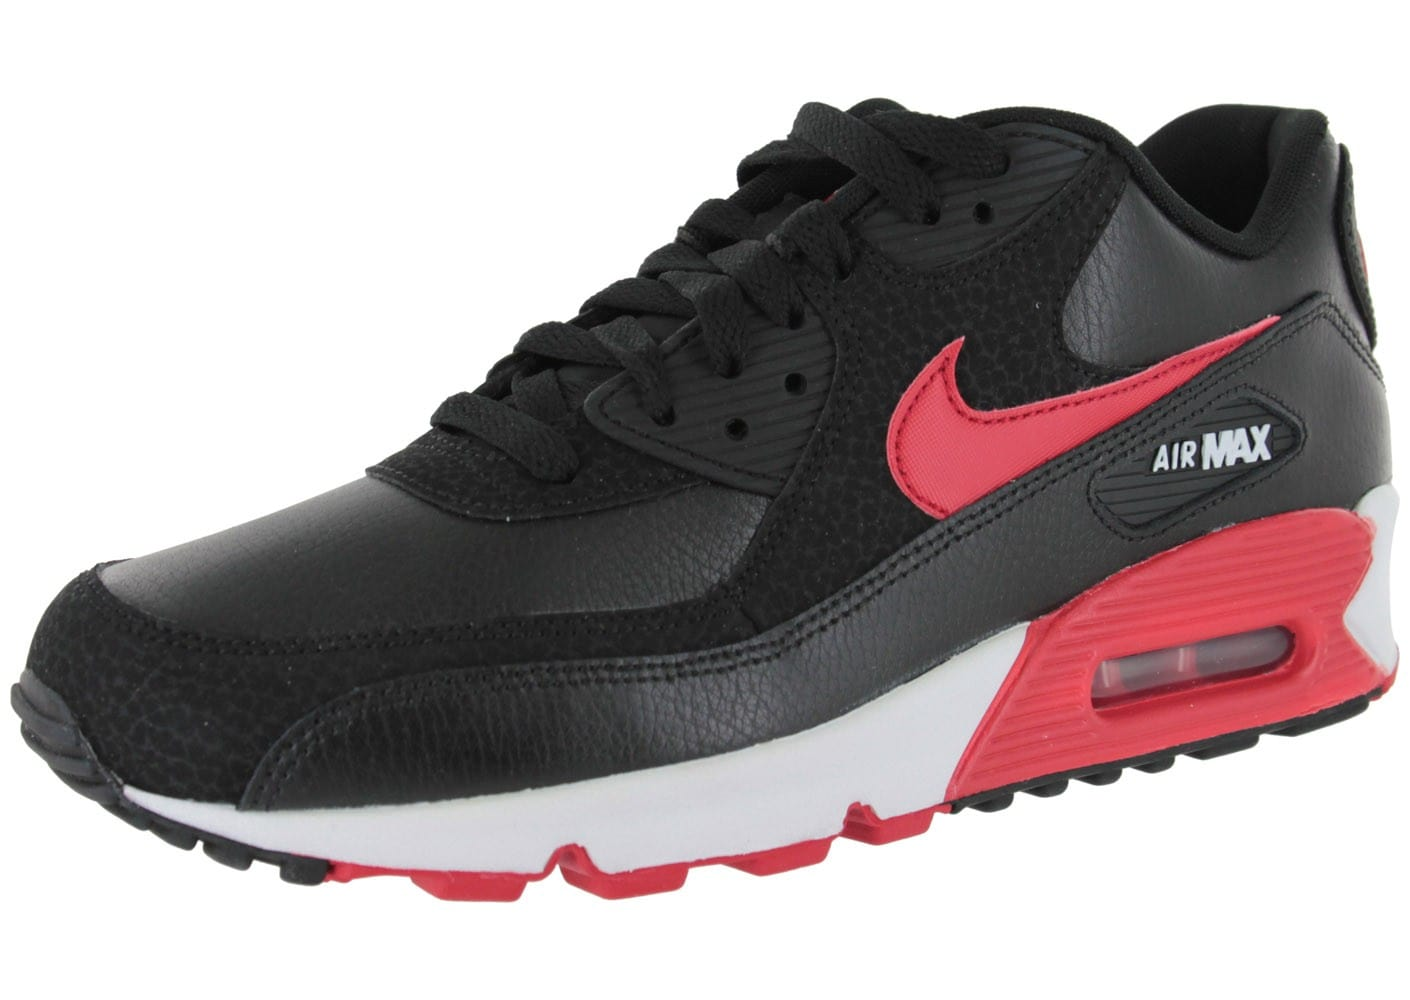 nike air max 90 cuir noire chaussures homme chausport. Black Bedroom Furniture Sets. Home Design Ideas